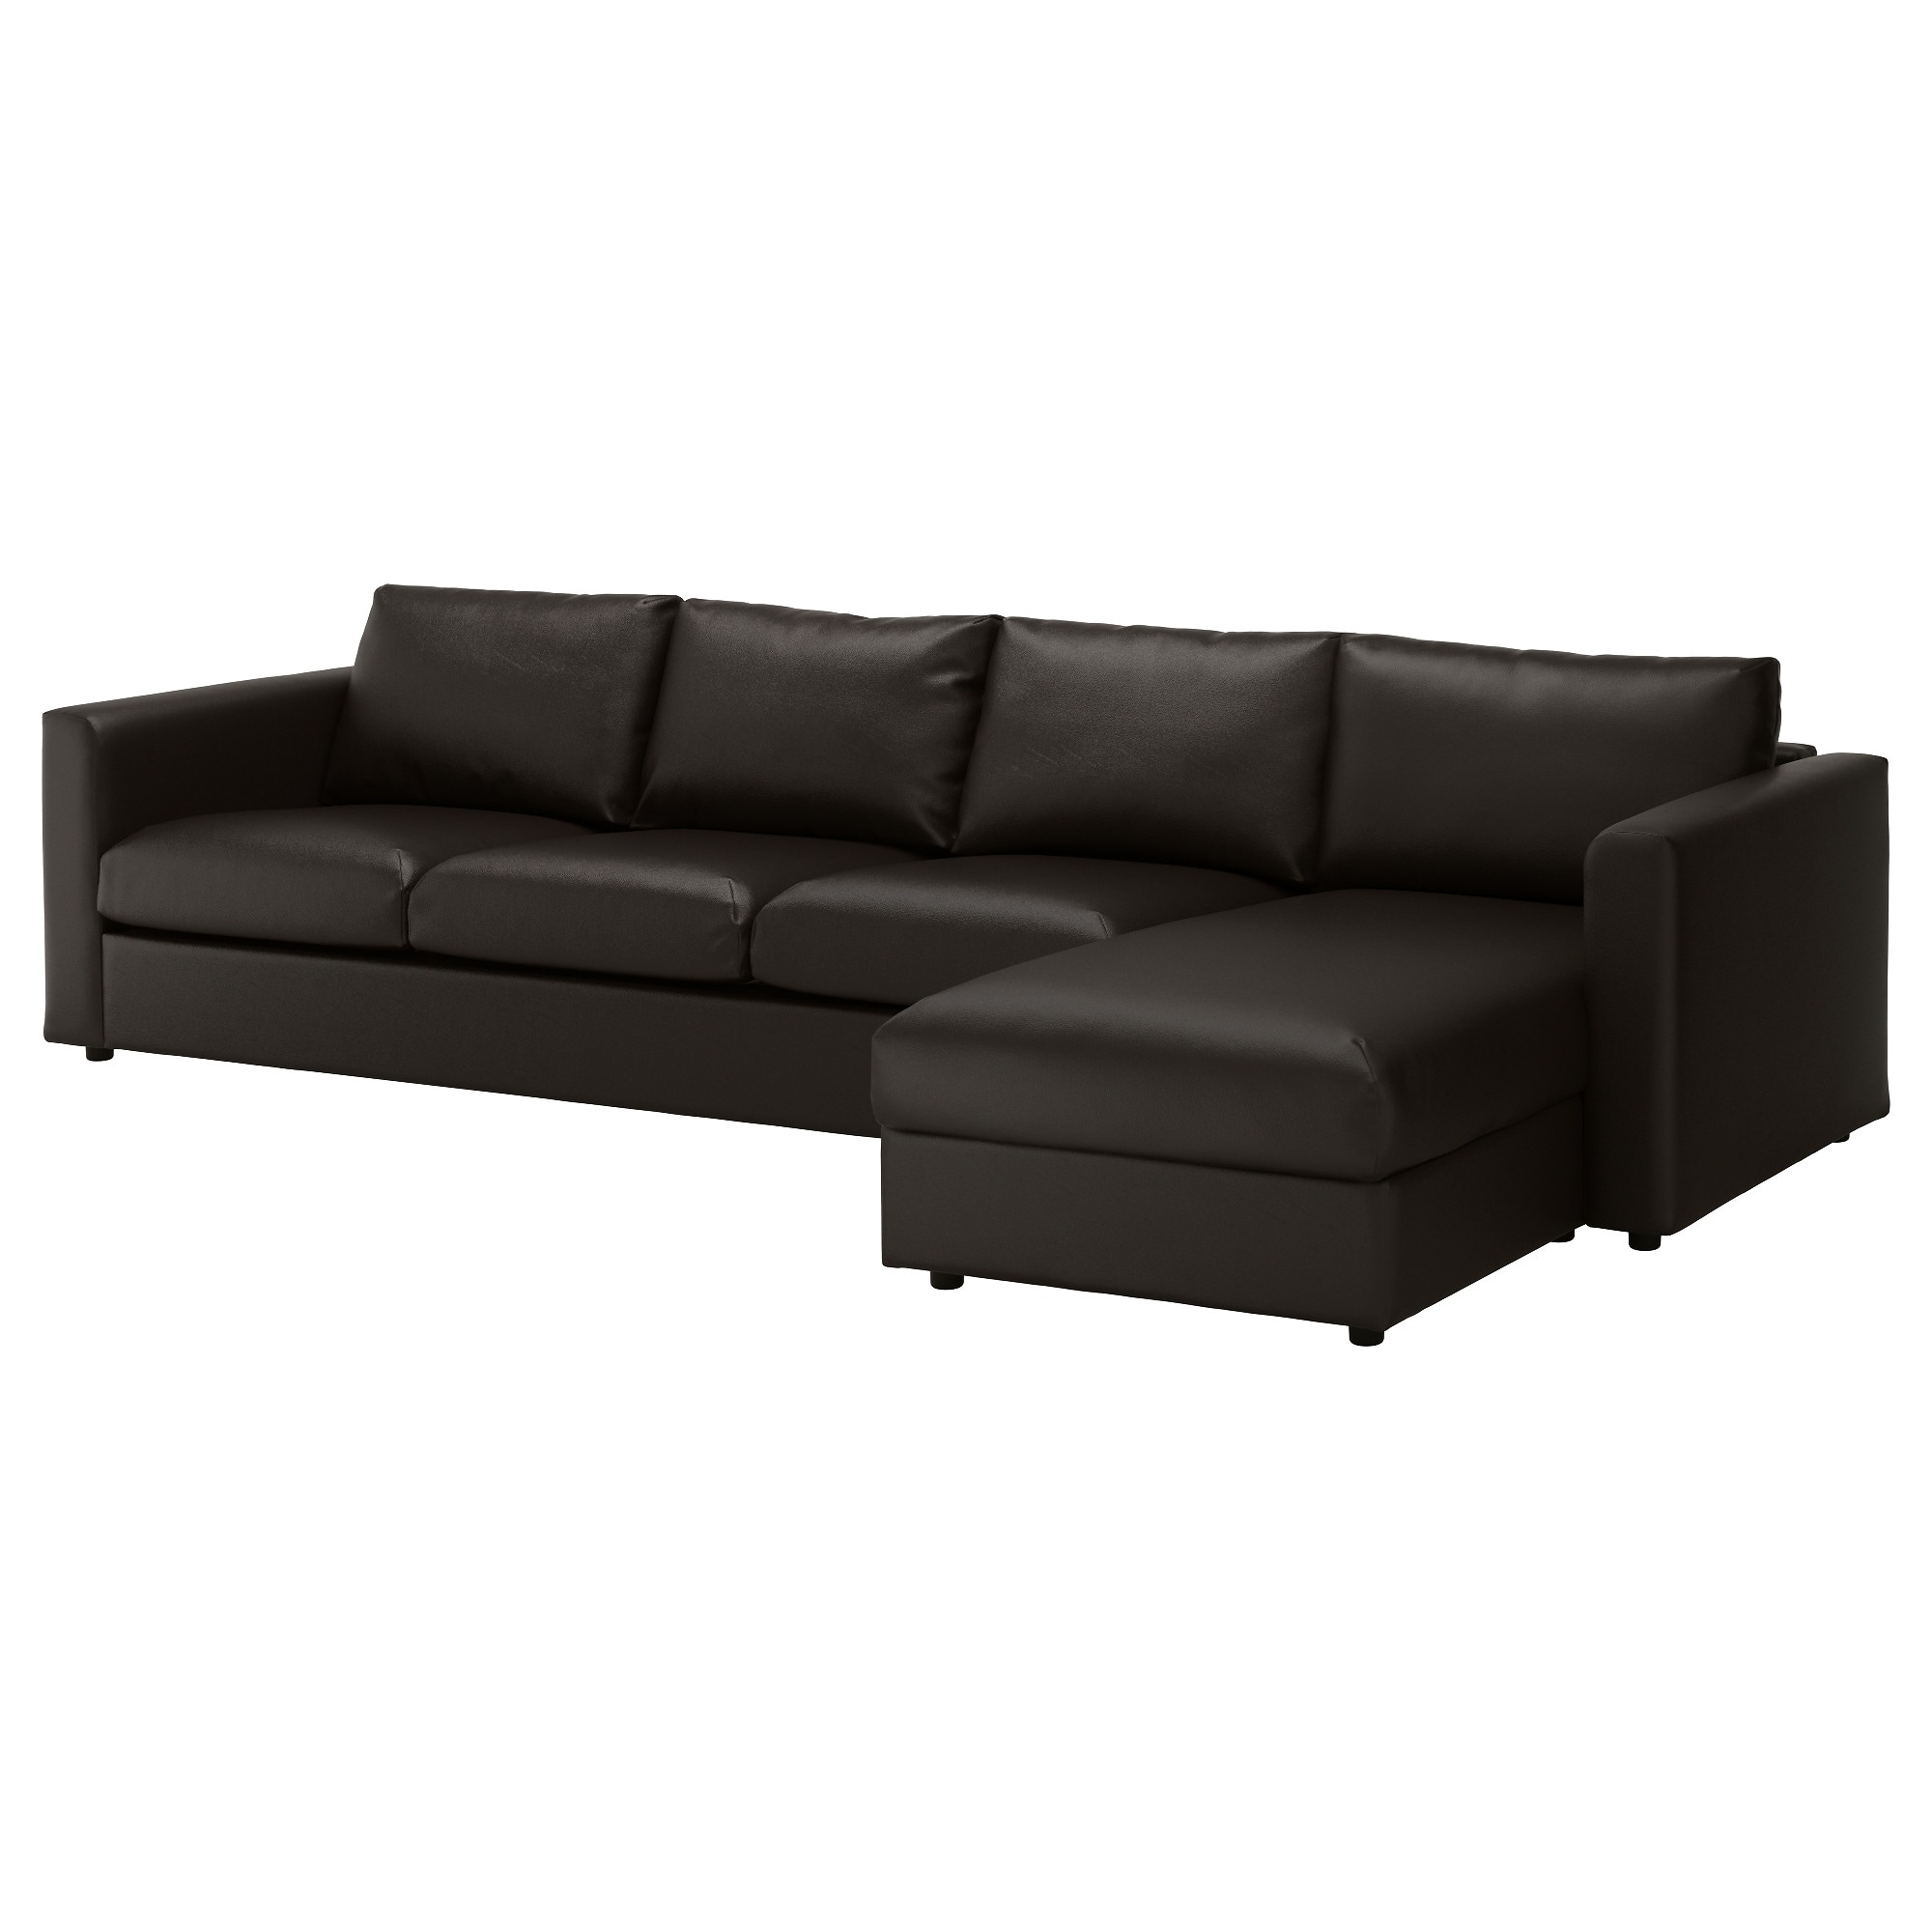 Vimle Sectional, 4-Seat - With Chaise/tallmyra Black/gray - Ikea with regard to Norfolk Grey 6 Piece Sectionals